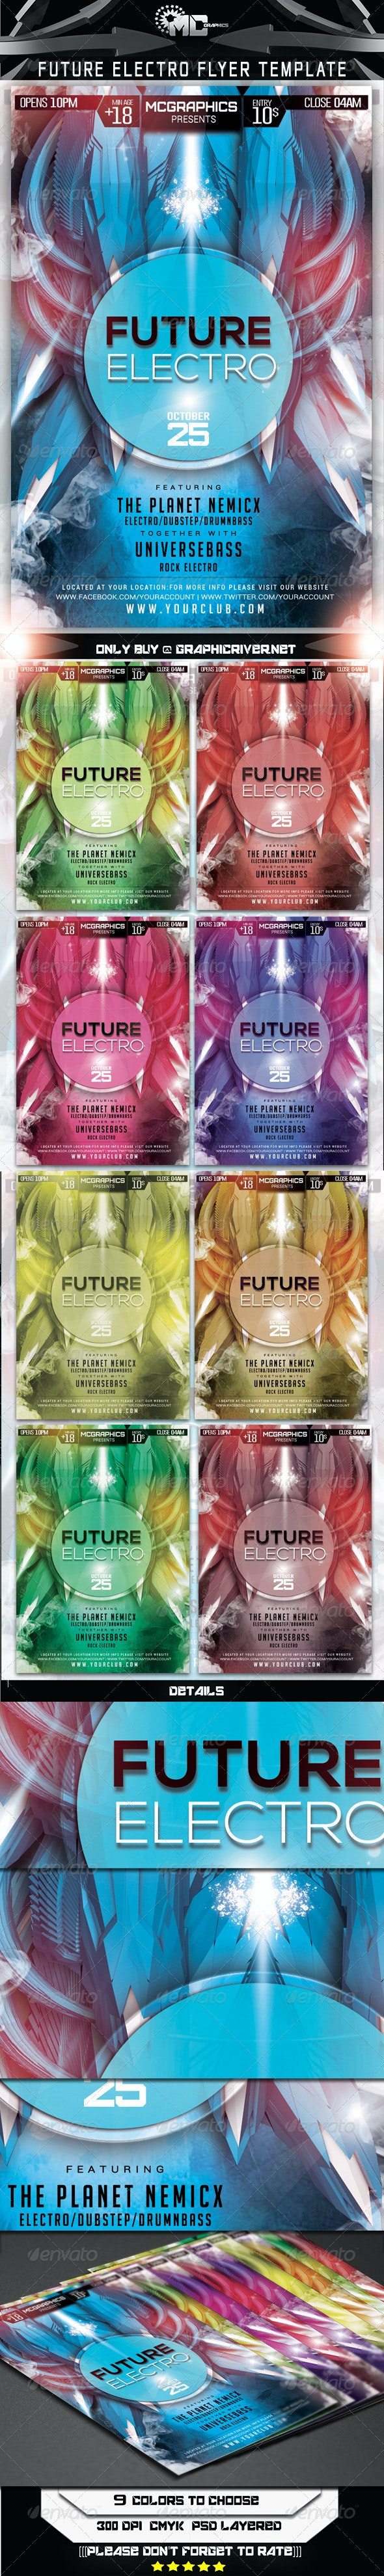 Future Electro Flyer Template - Flyers Print Templates